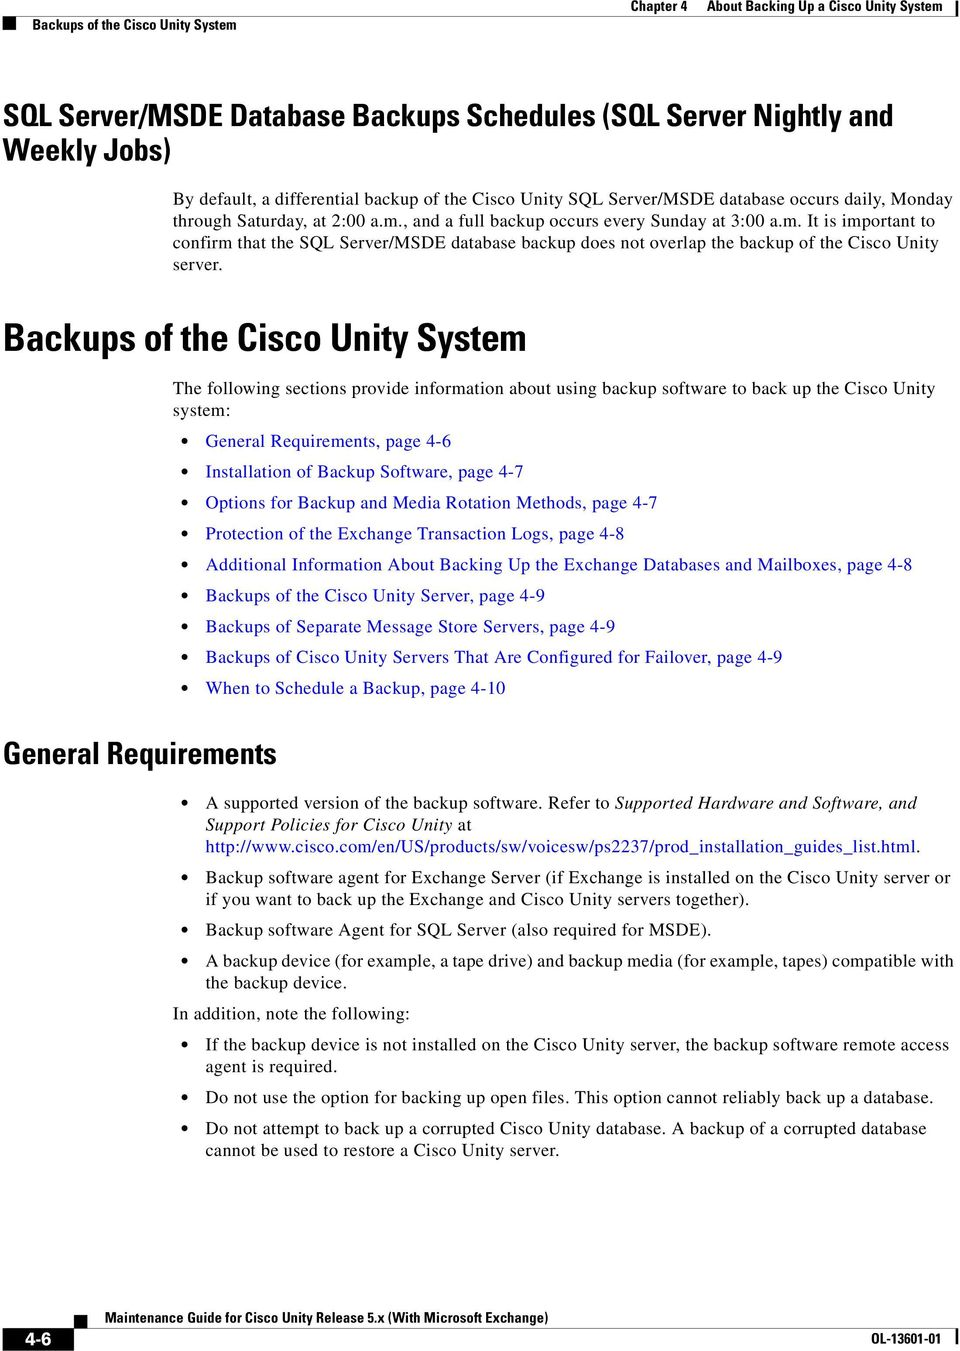 Backups of the Cisco Unity System The following sections provide information about using backup software to back up the Cisco Unity system: General Requirements, page 4-6 Installation of Backup